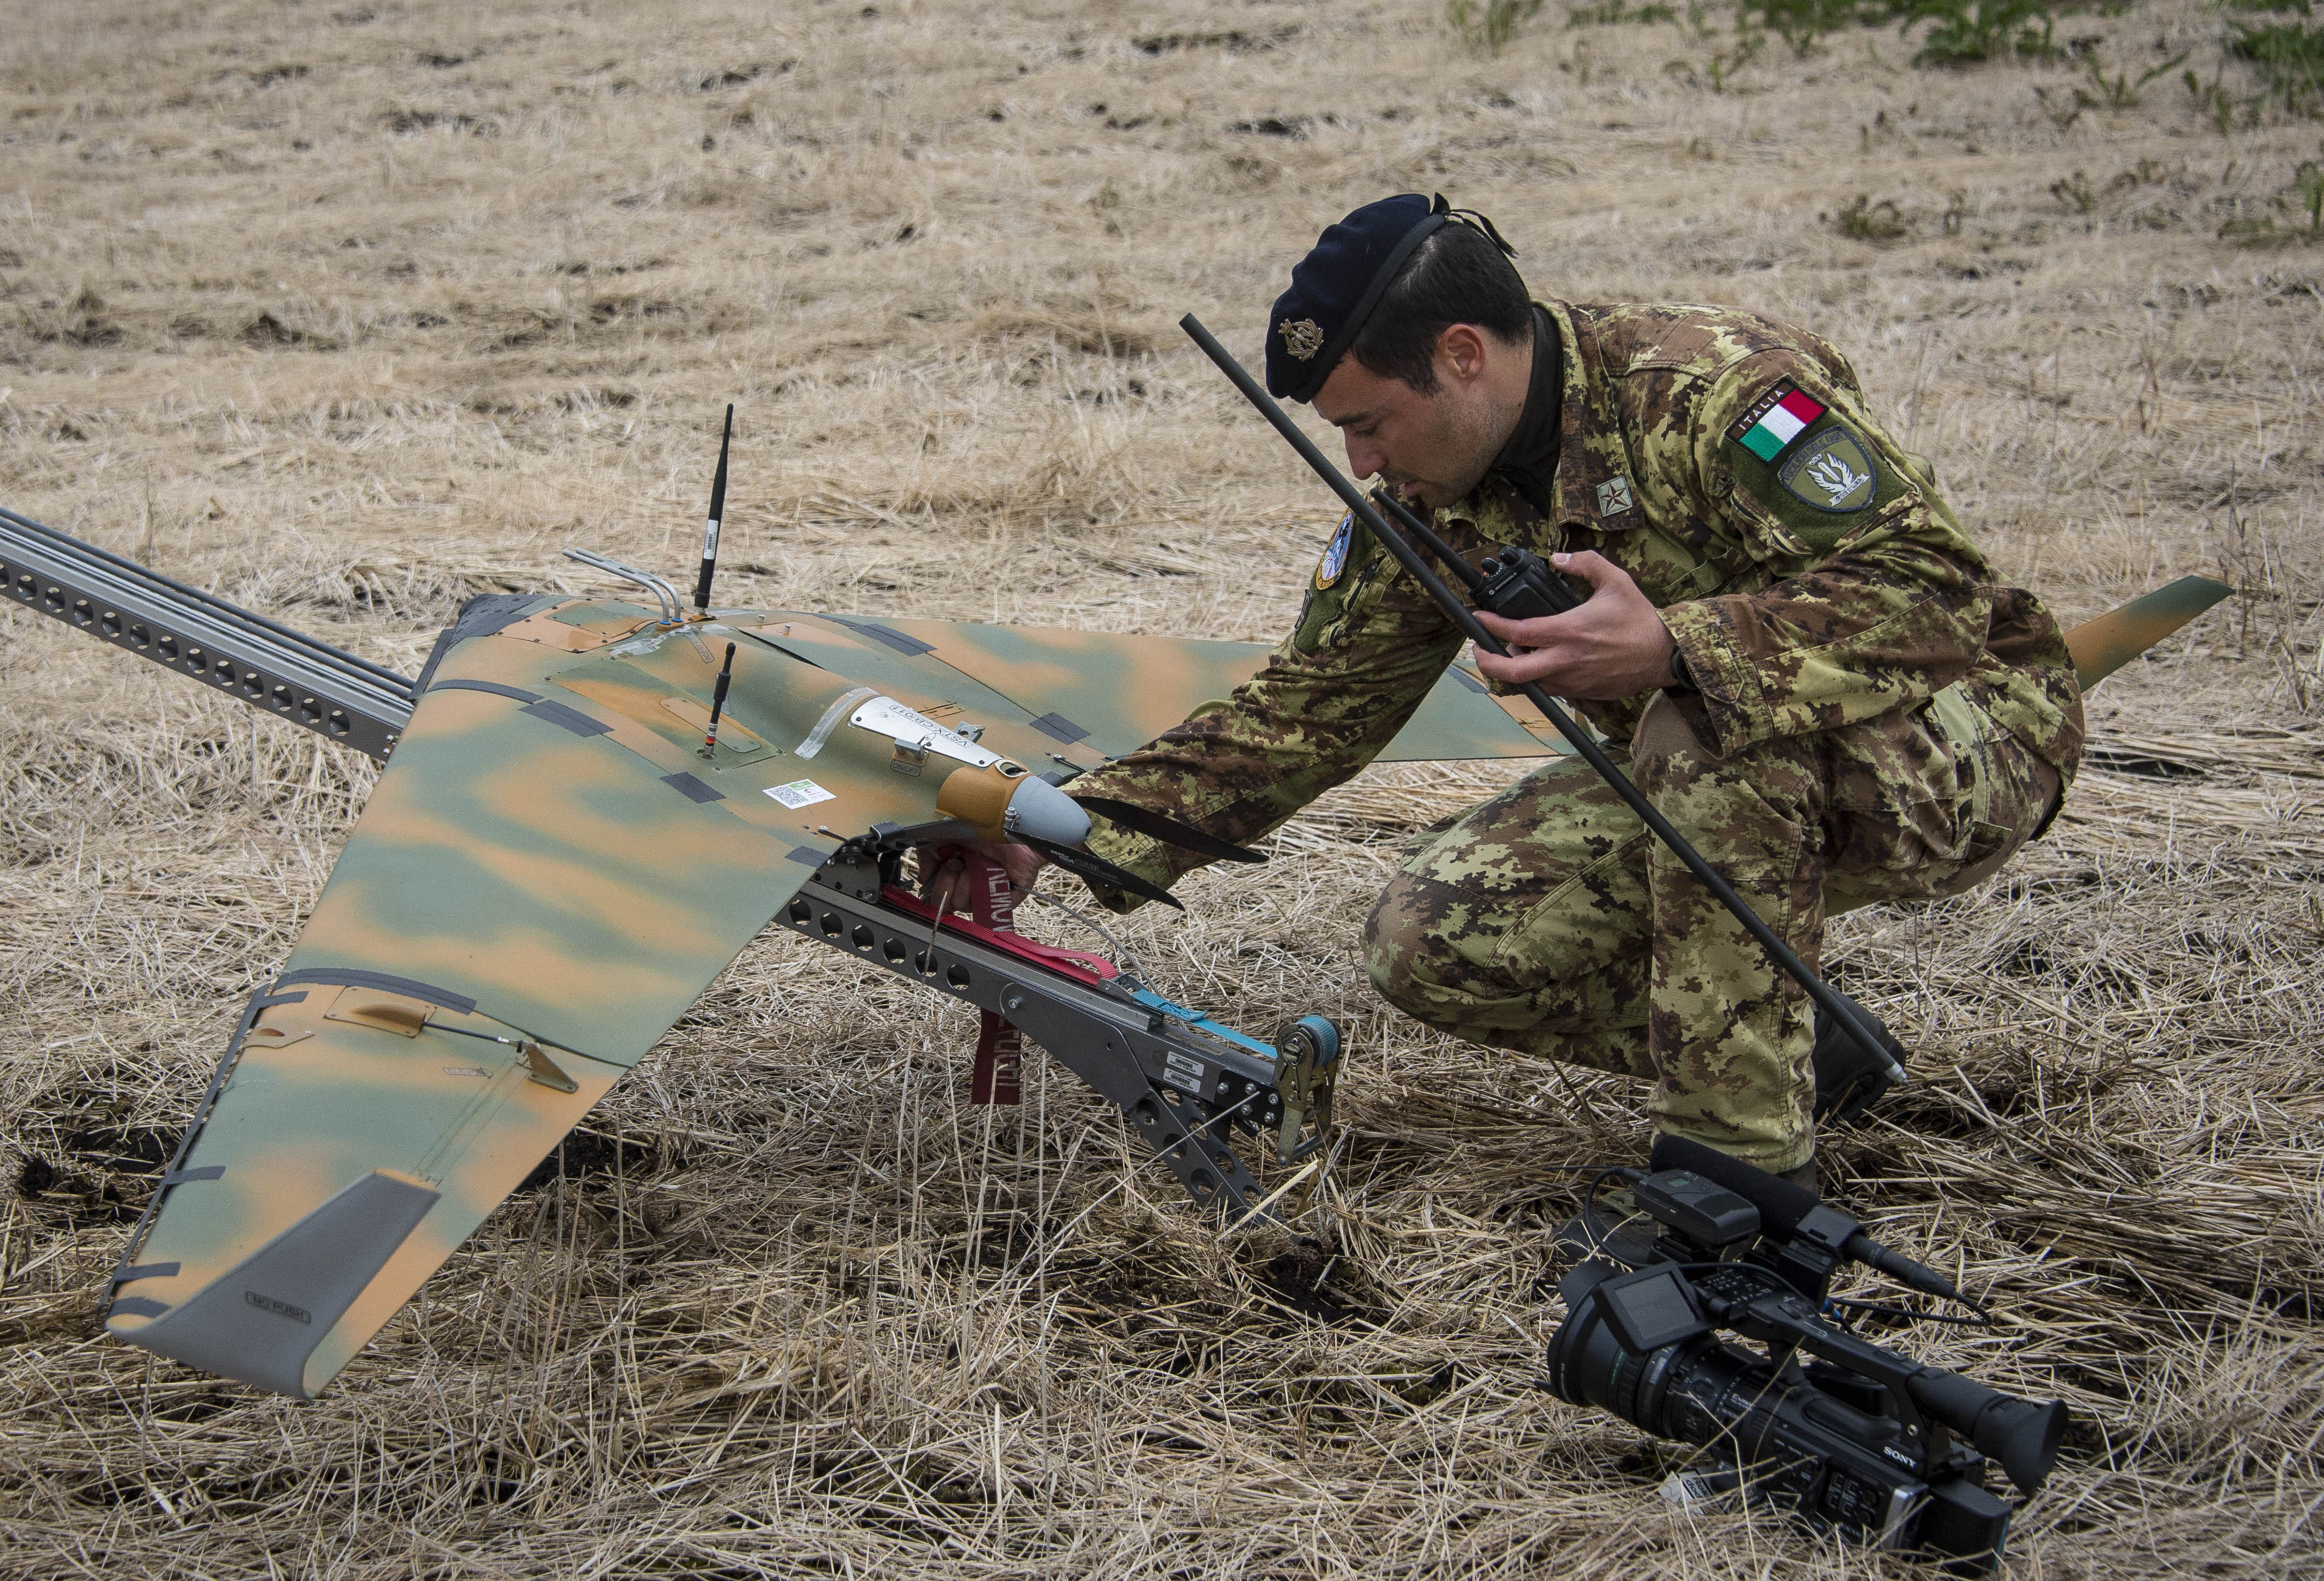 MEPs plan to give up veto on military subsidies